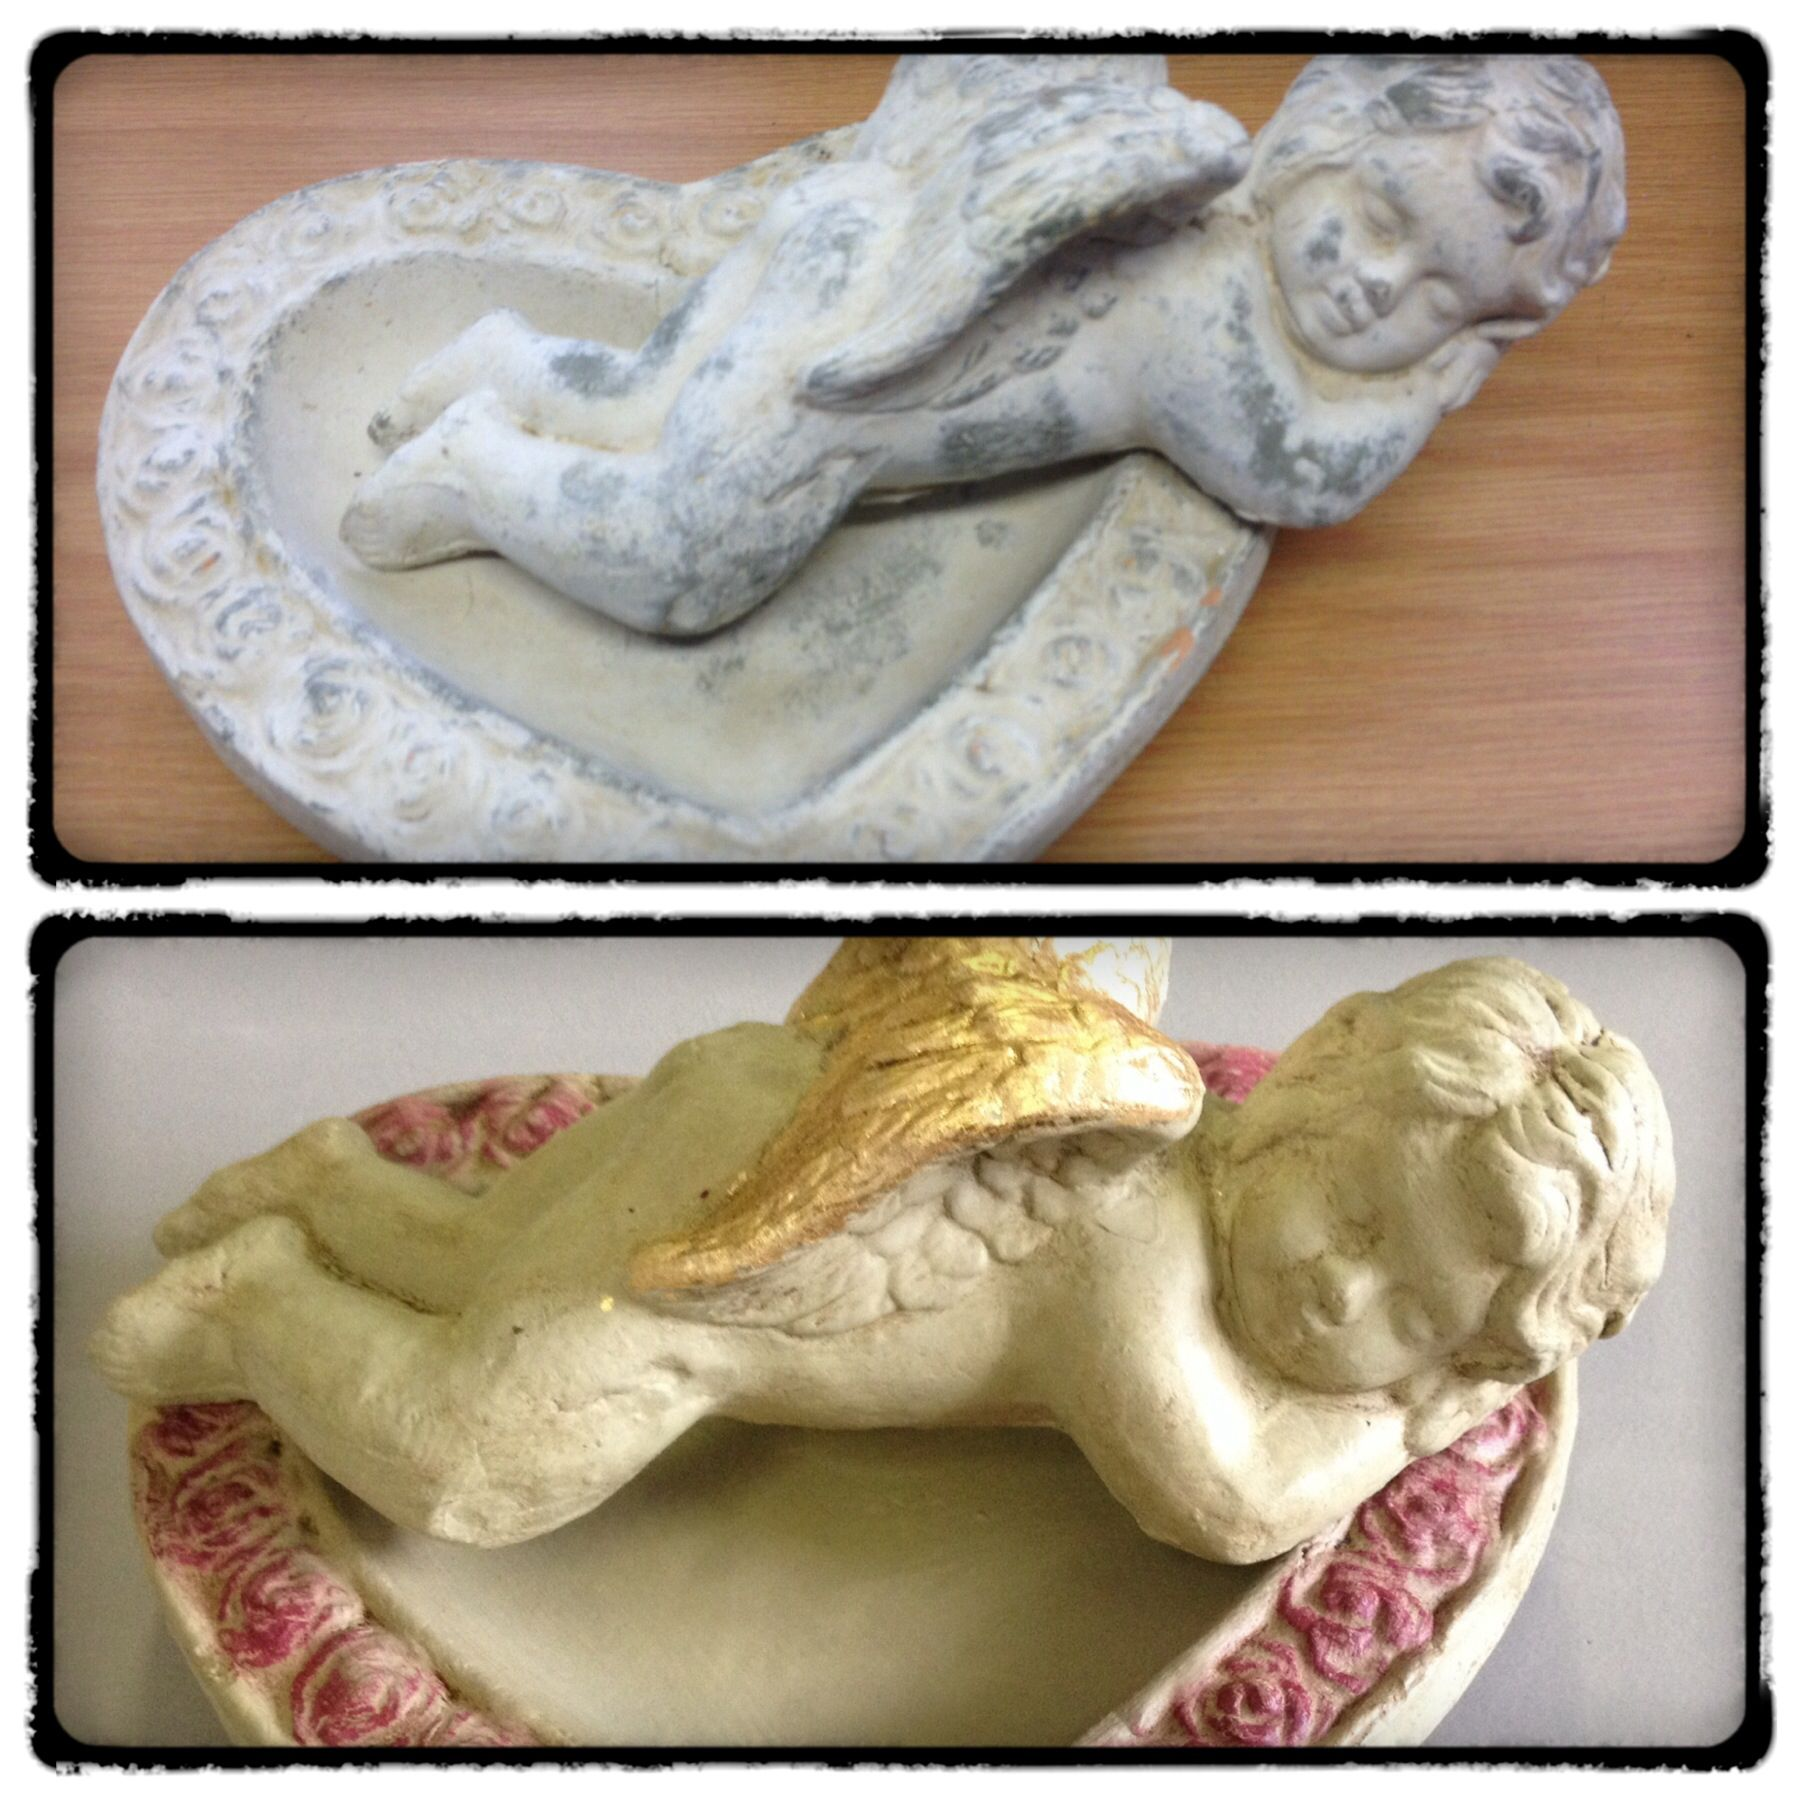 Concrete transformed to an angel with versailles gold leaf and dark